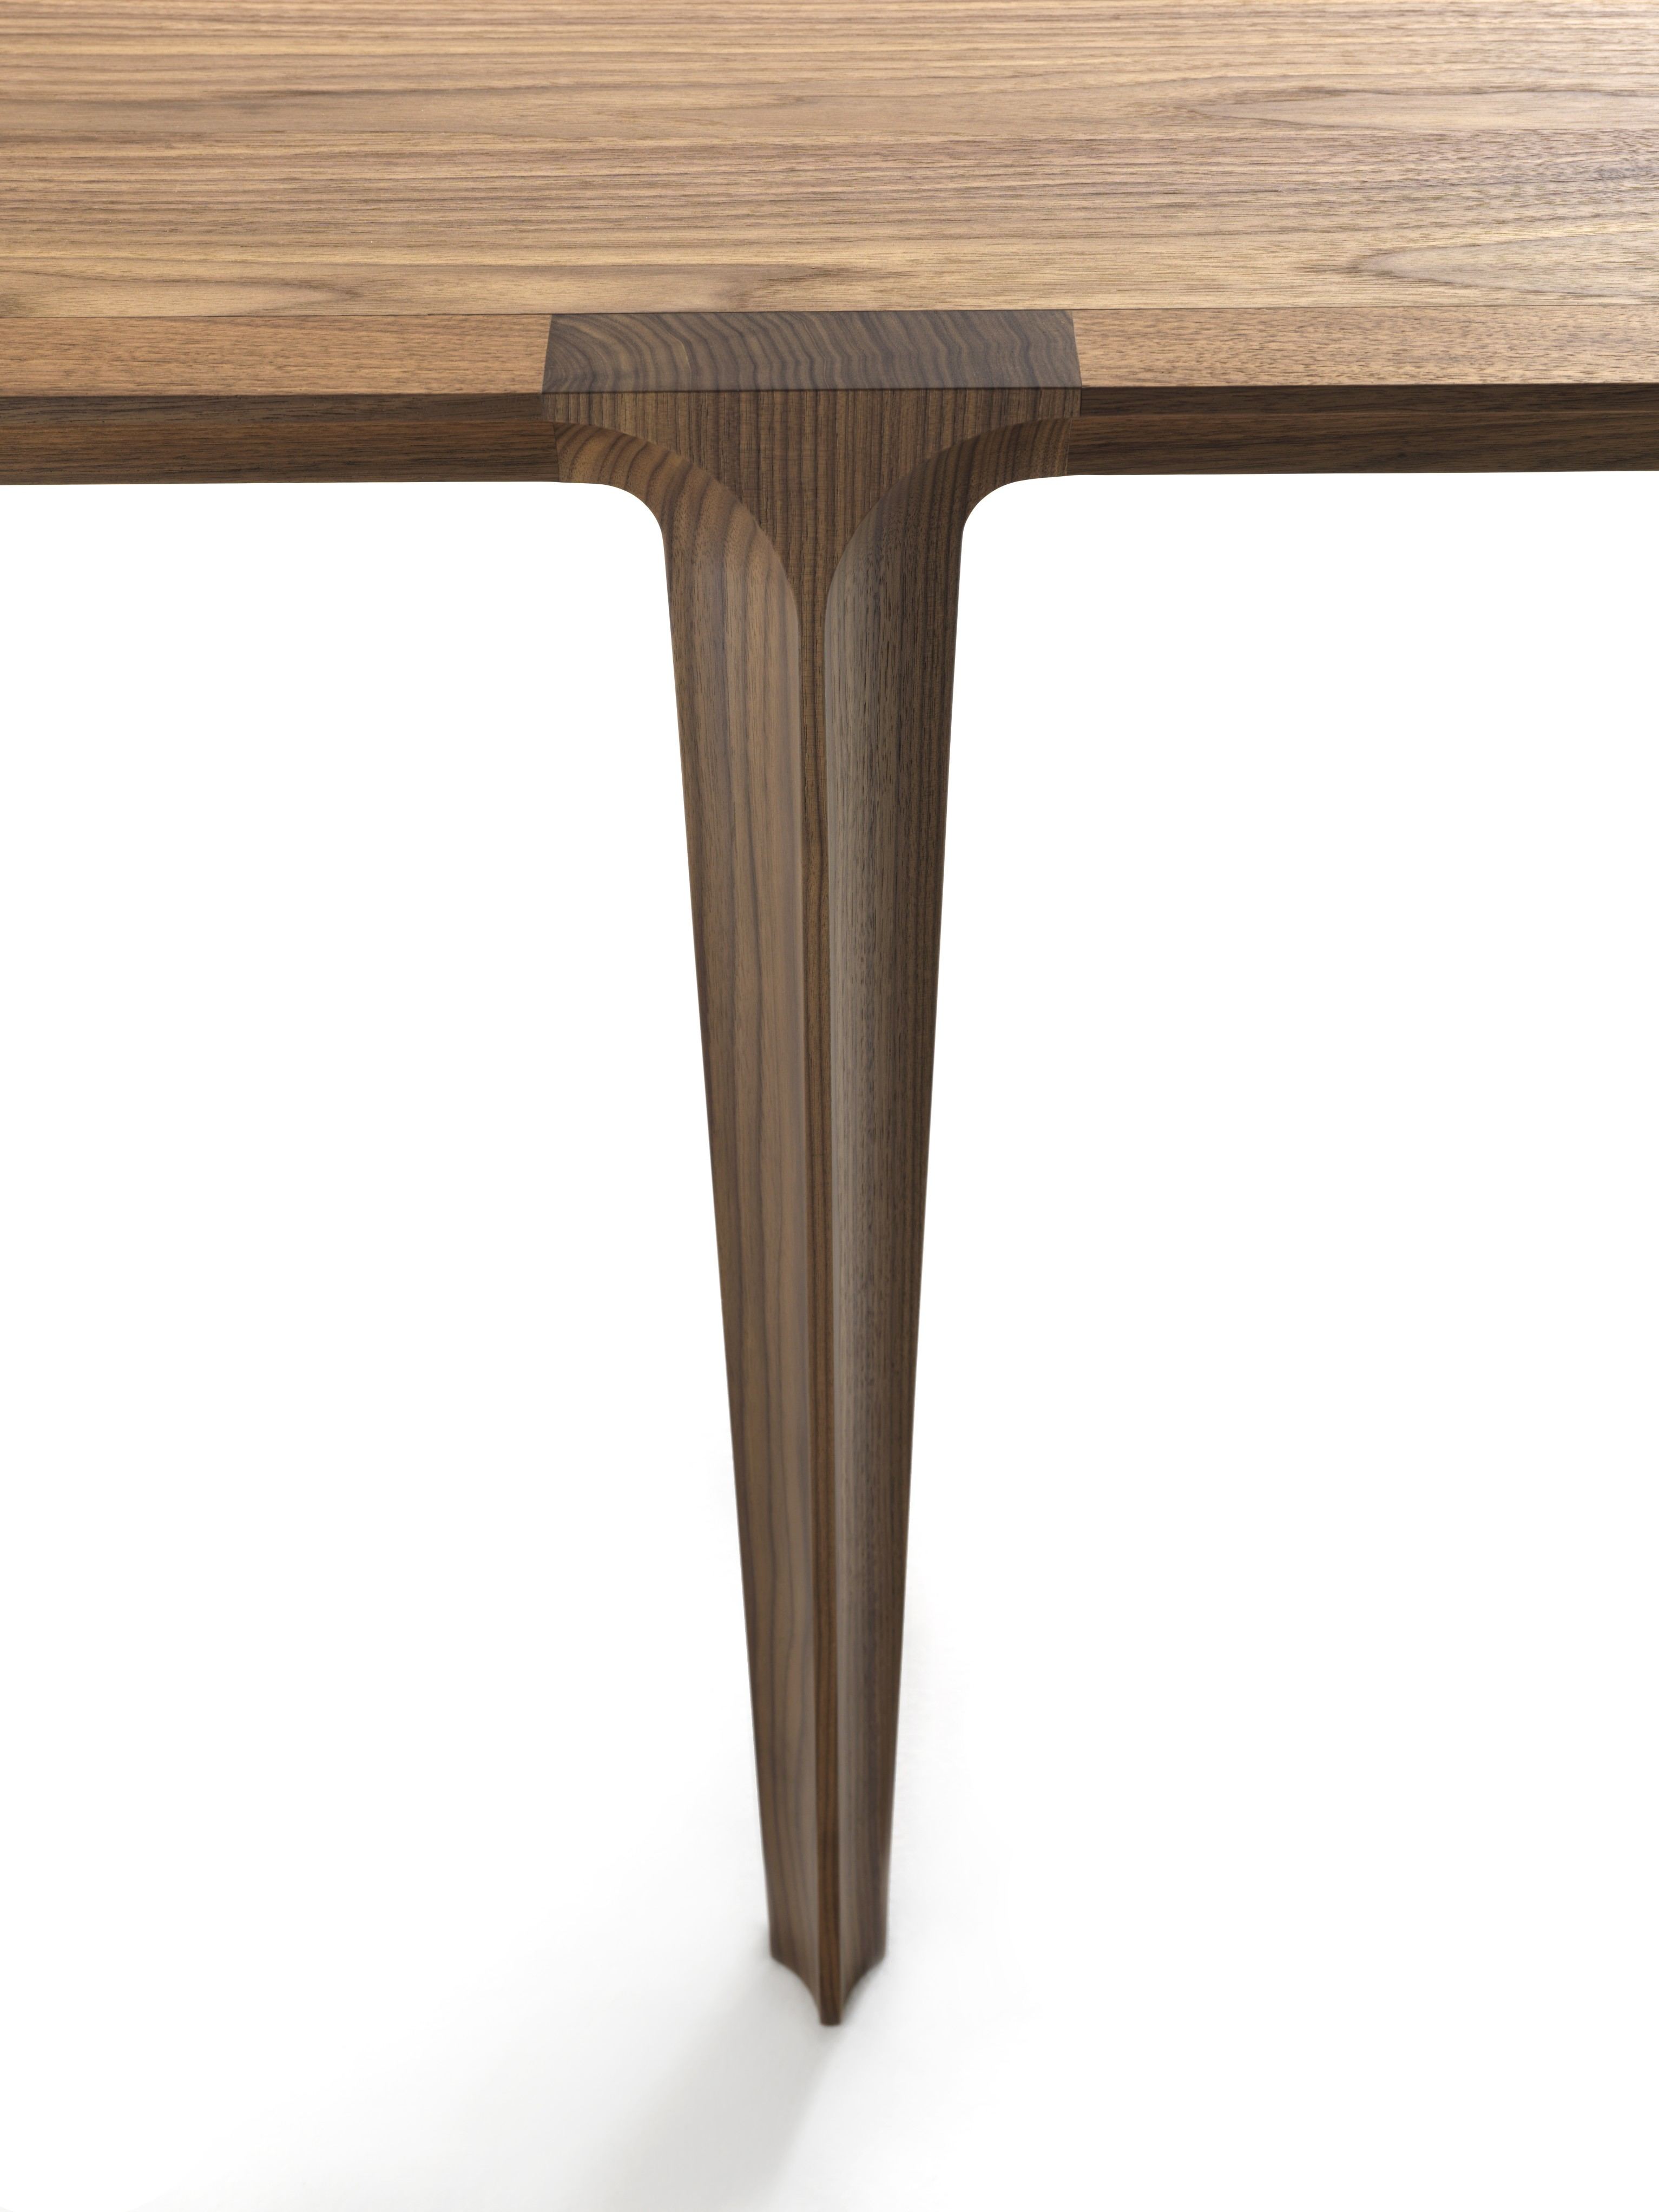 Renaissance Table - <p>A table inspired by historical European architecture; looking at this faint lines, one can recognise a reinterpretation of the shape of a full-centre arch, which characterises buildings and cathedrals of the Renaissance.</p>  | Matter of Stuff